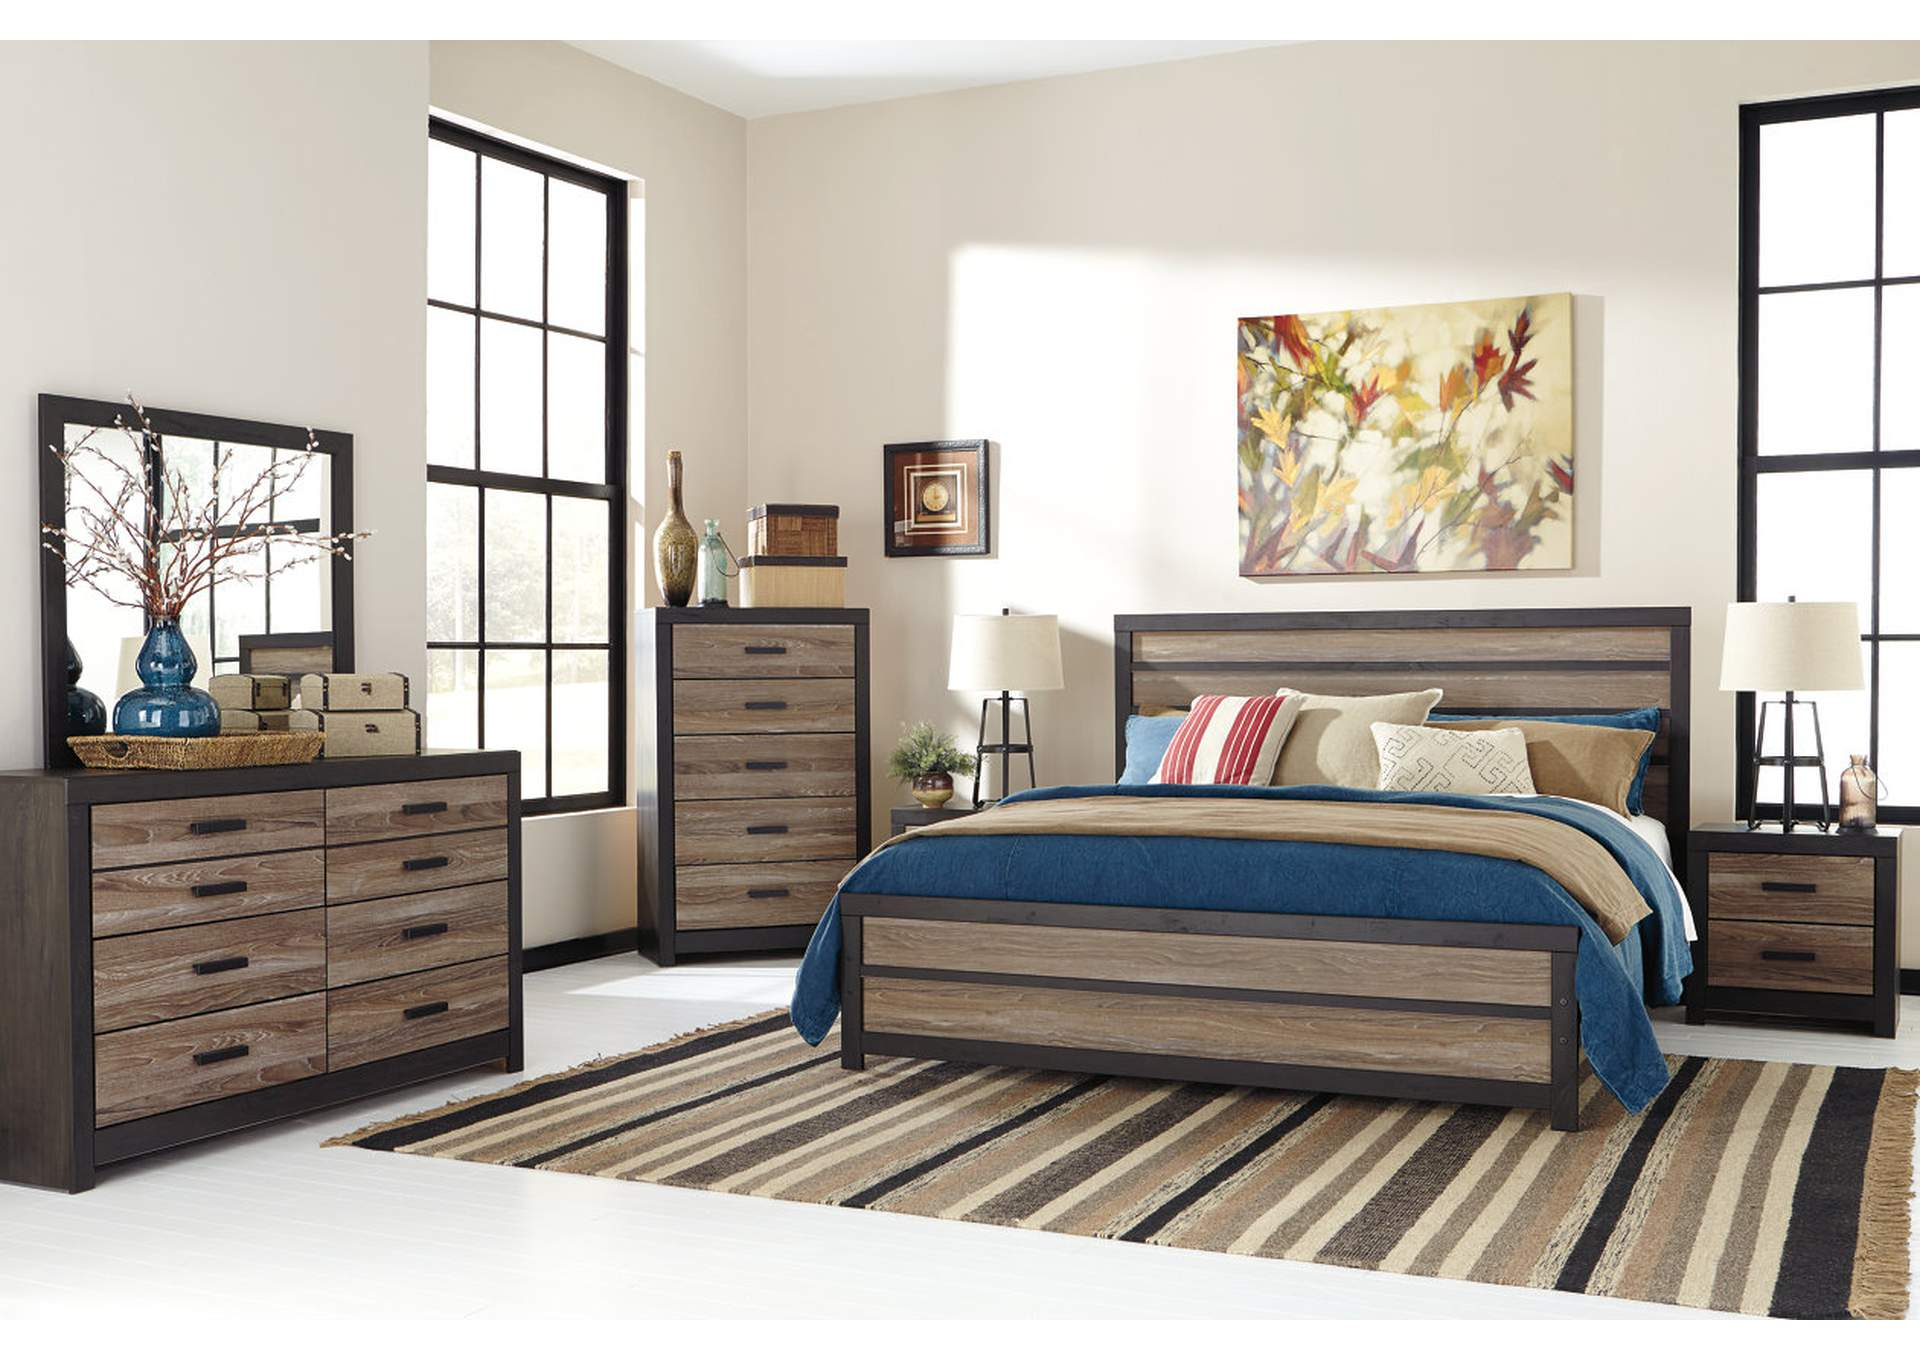 Harlinton Queen Panel Bed w/Dresser, Mirror & Drawer Chest,Signature Design by Ashley